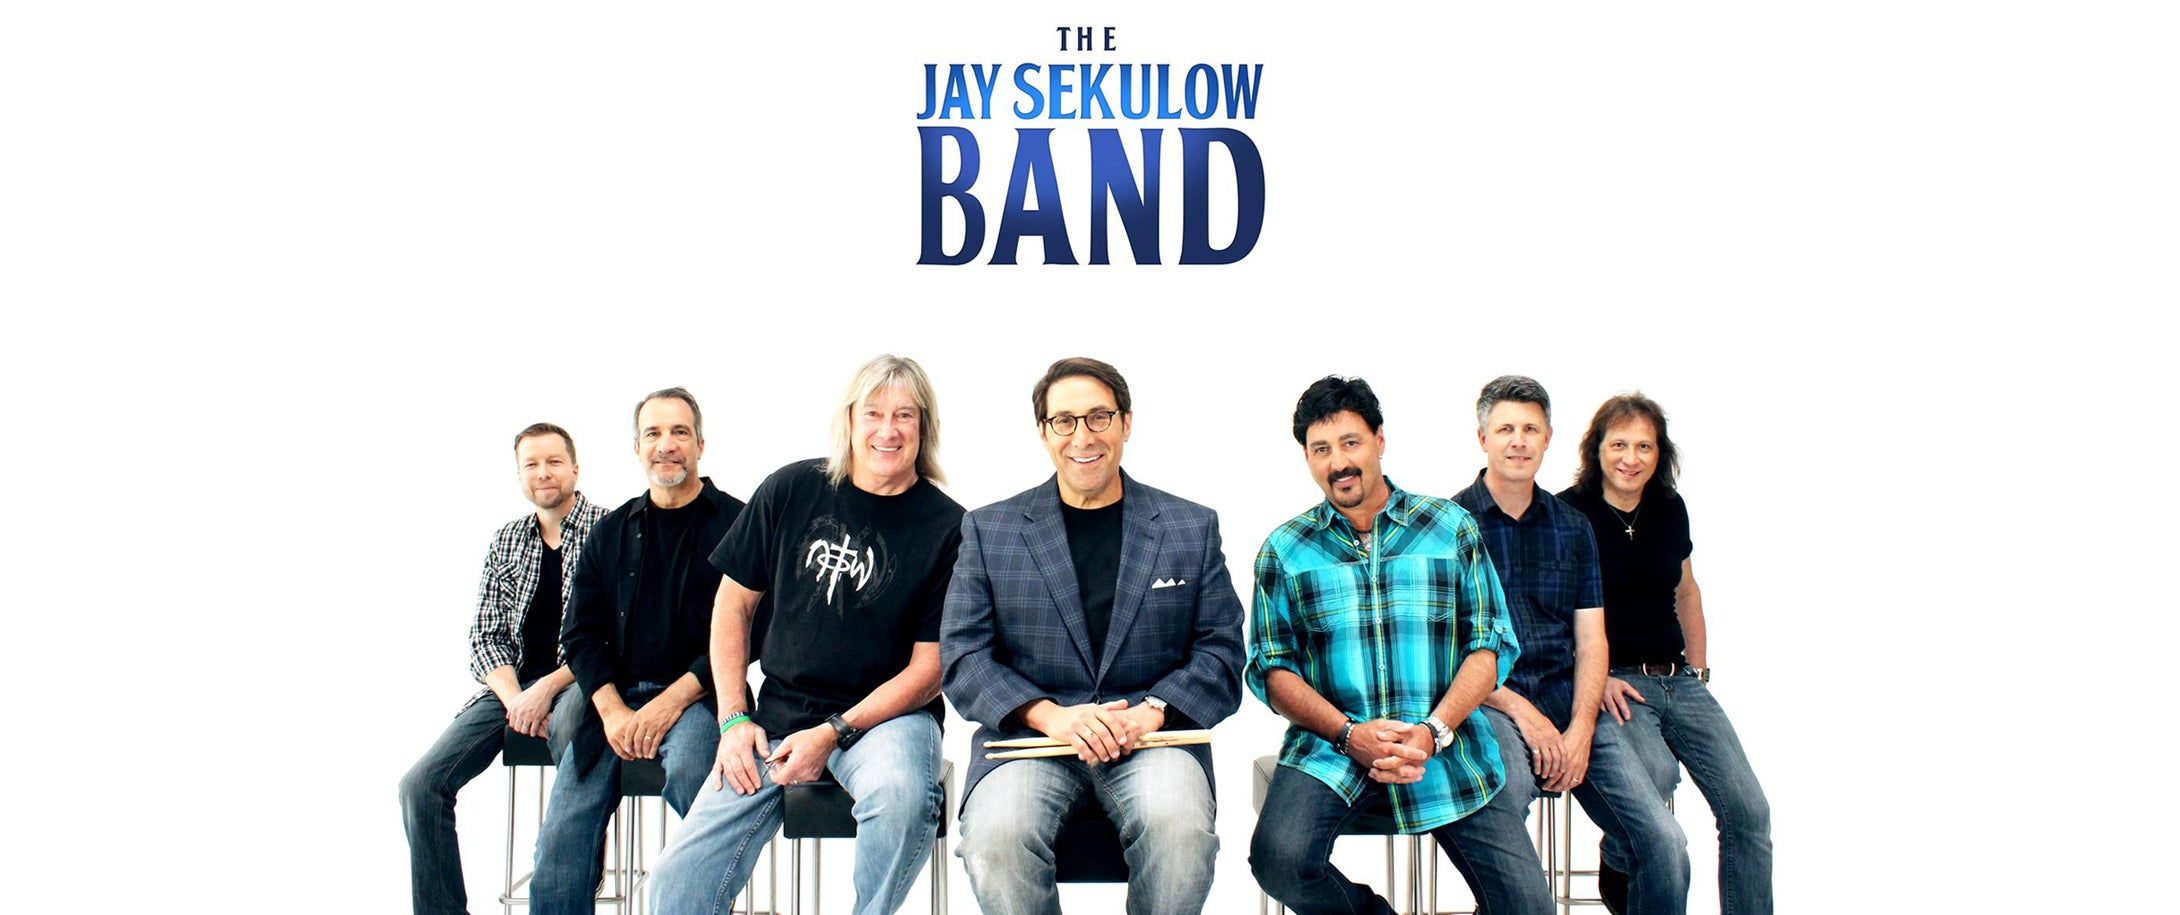 Jay Sekulow Band